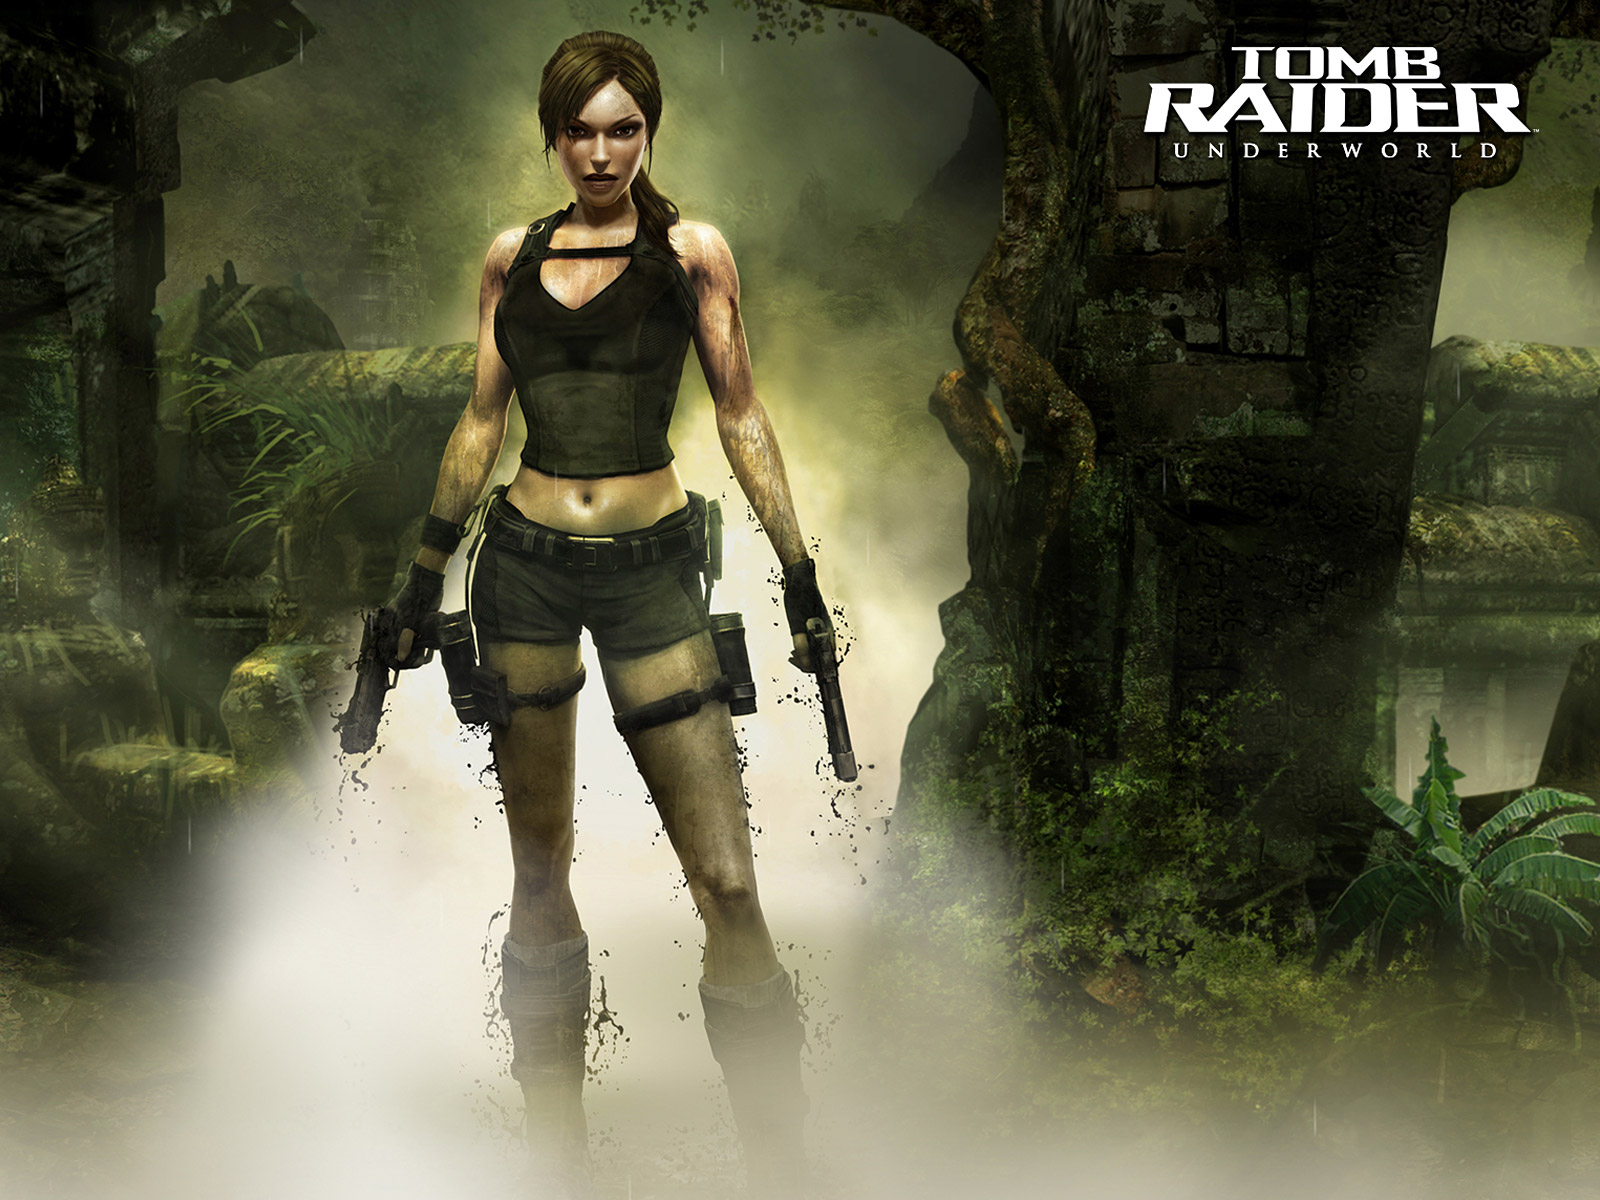 tomb raider underworld wallpapers - Tomb Raider Underworld Wallpapers HD Wallpapers